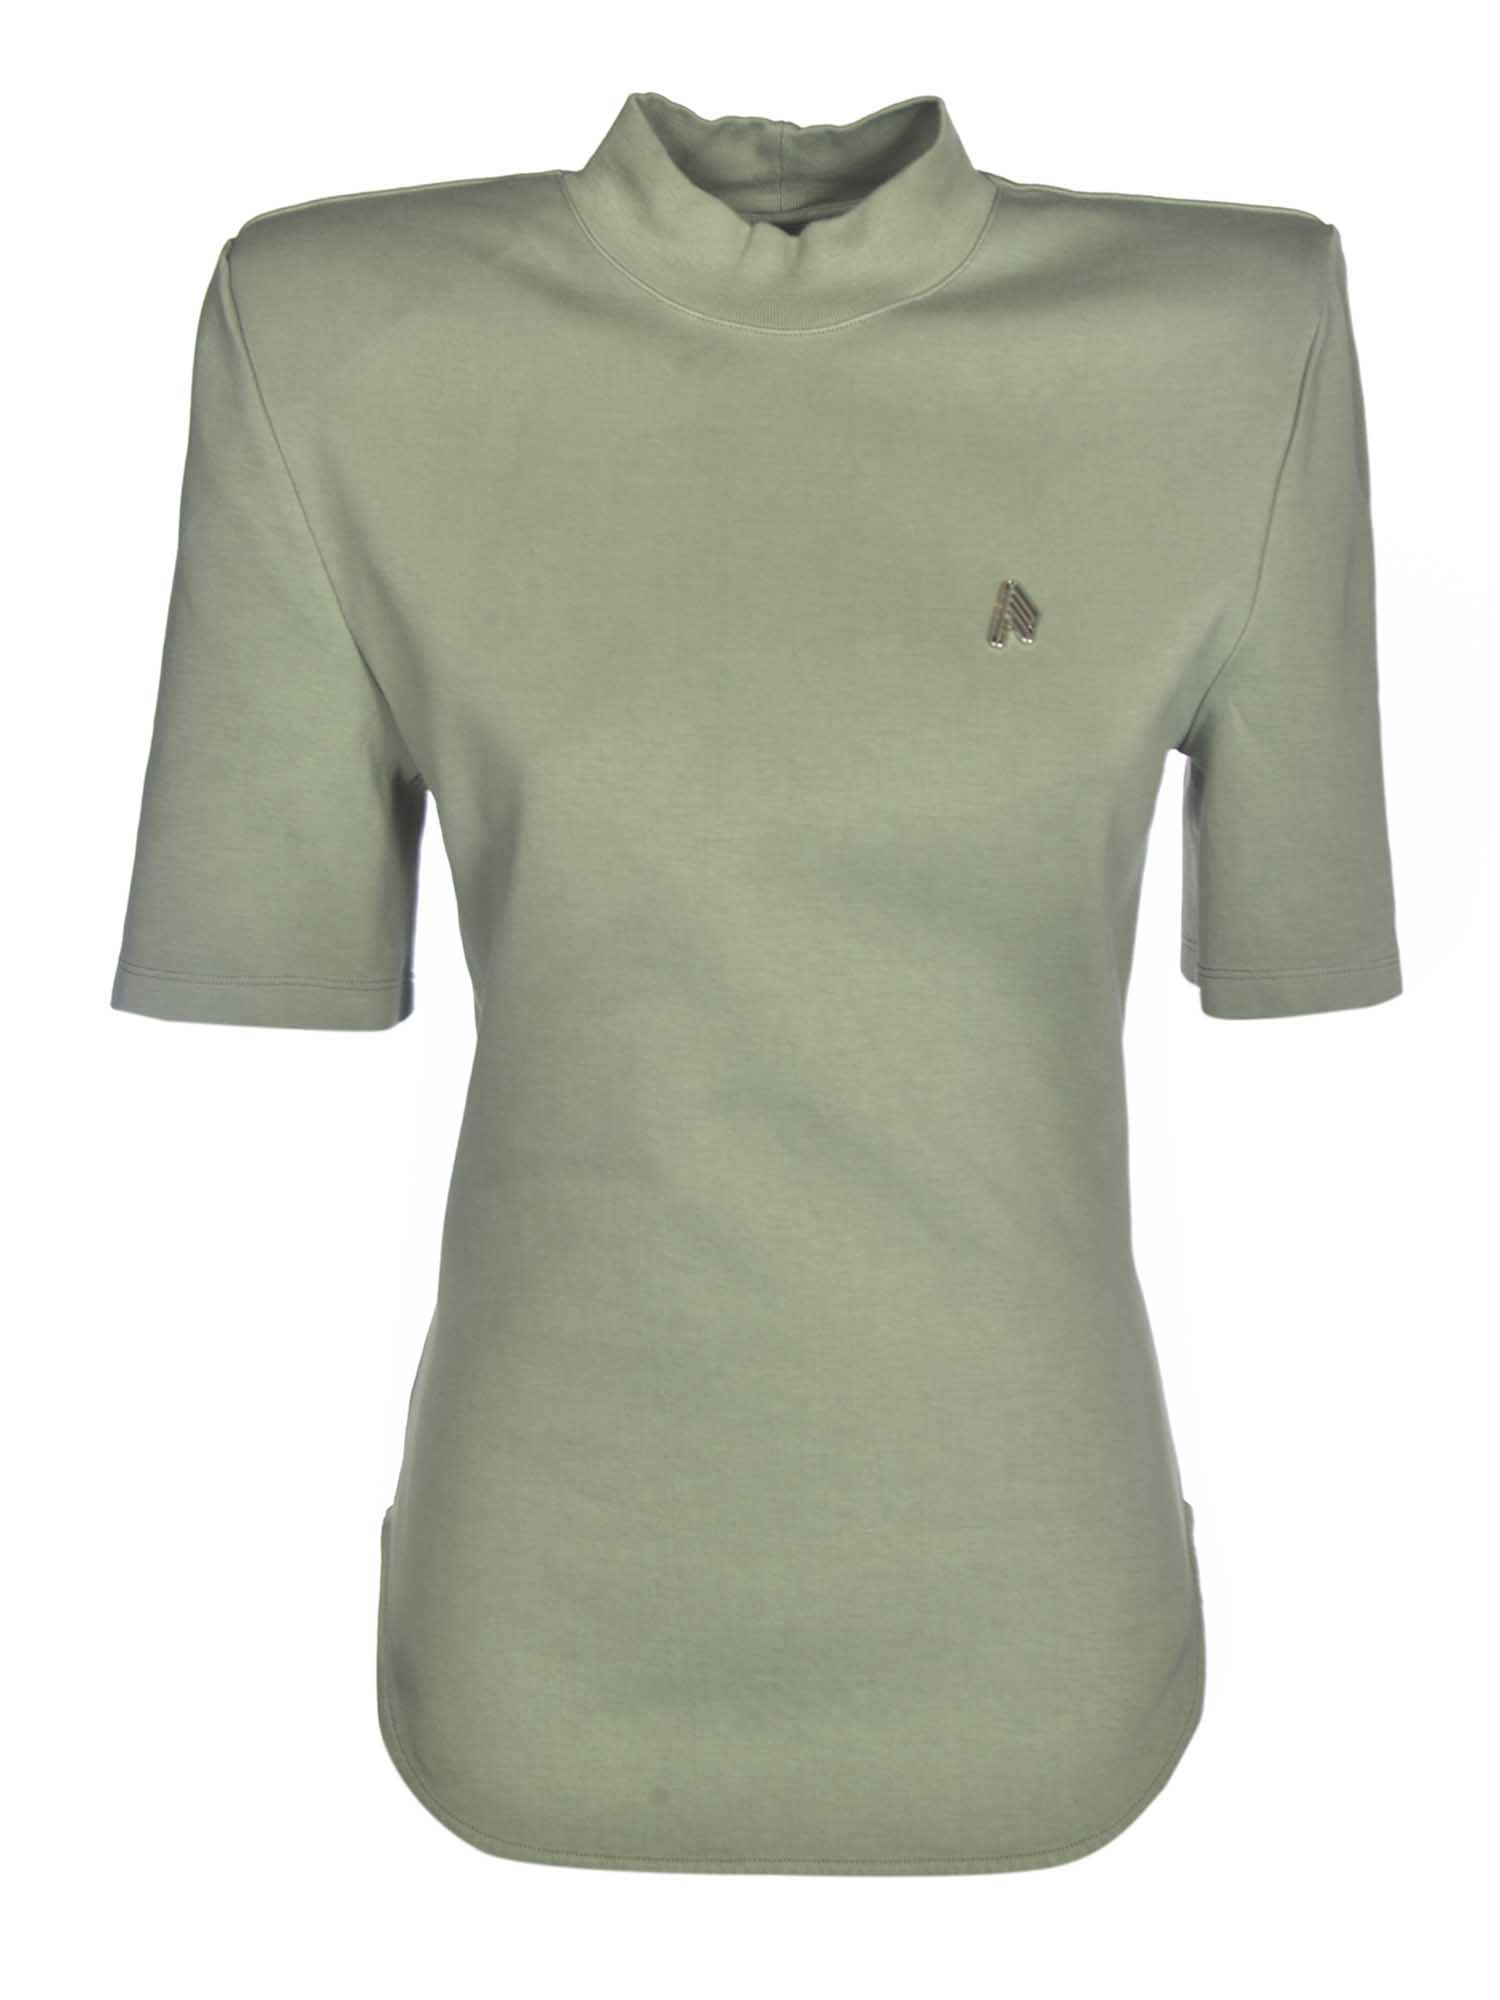 Attico SHOULDER PAD LOGO T-SHIRT IN OLIVINE COLOR